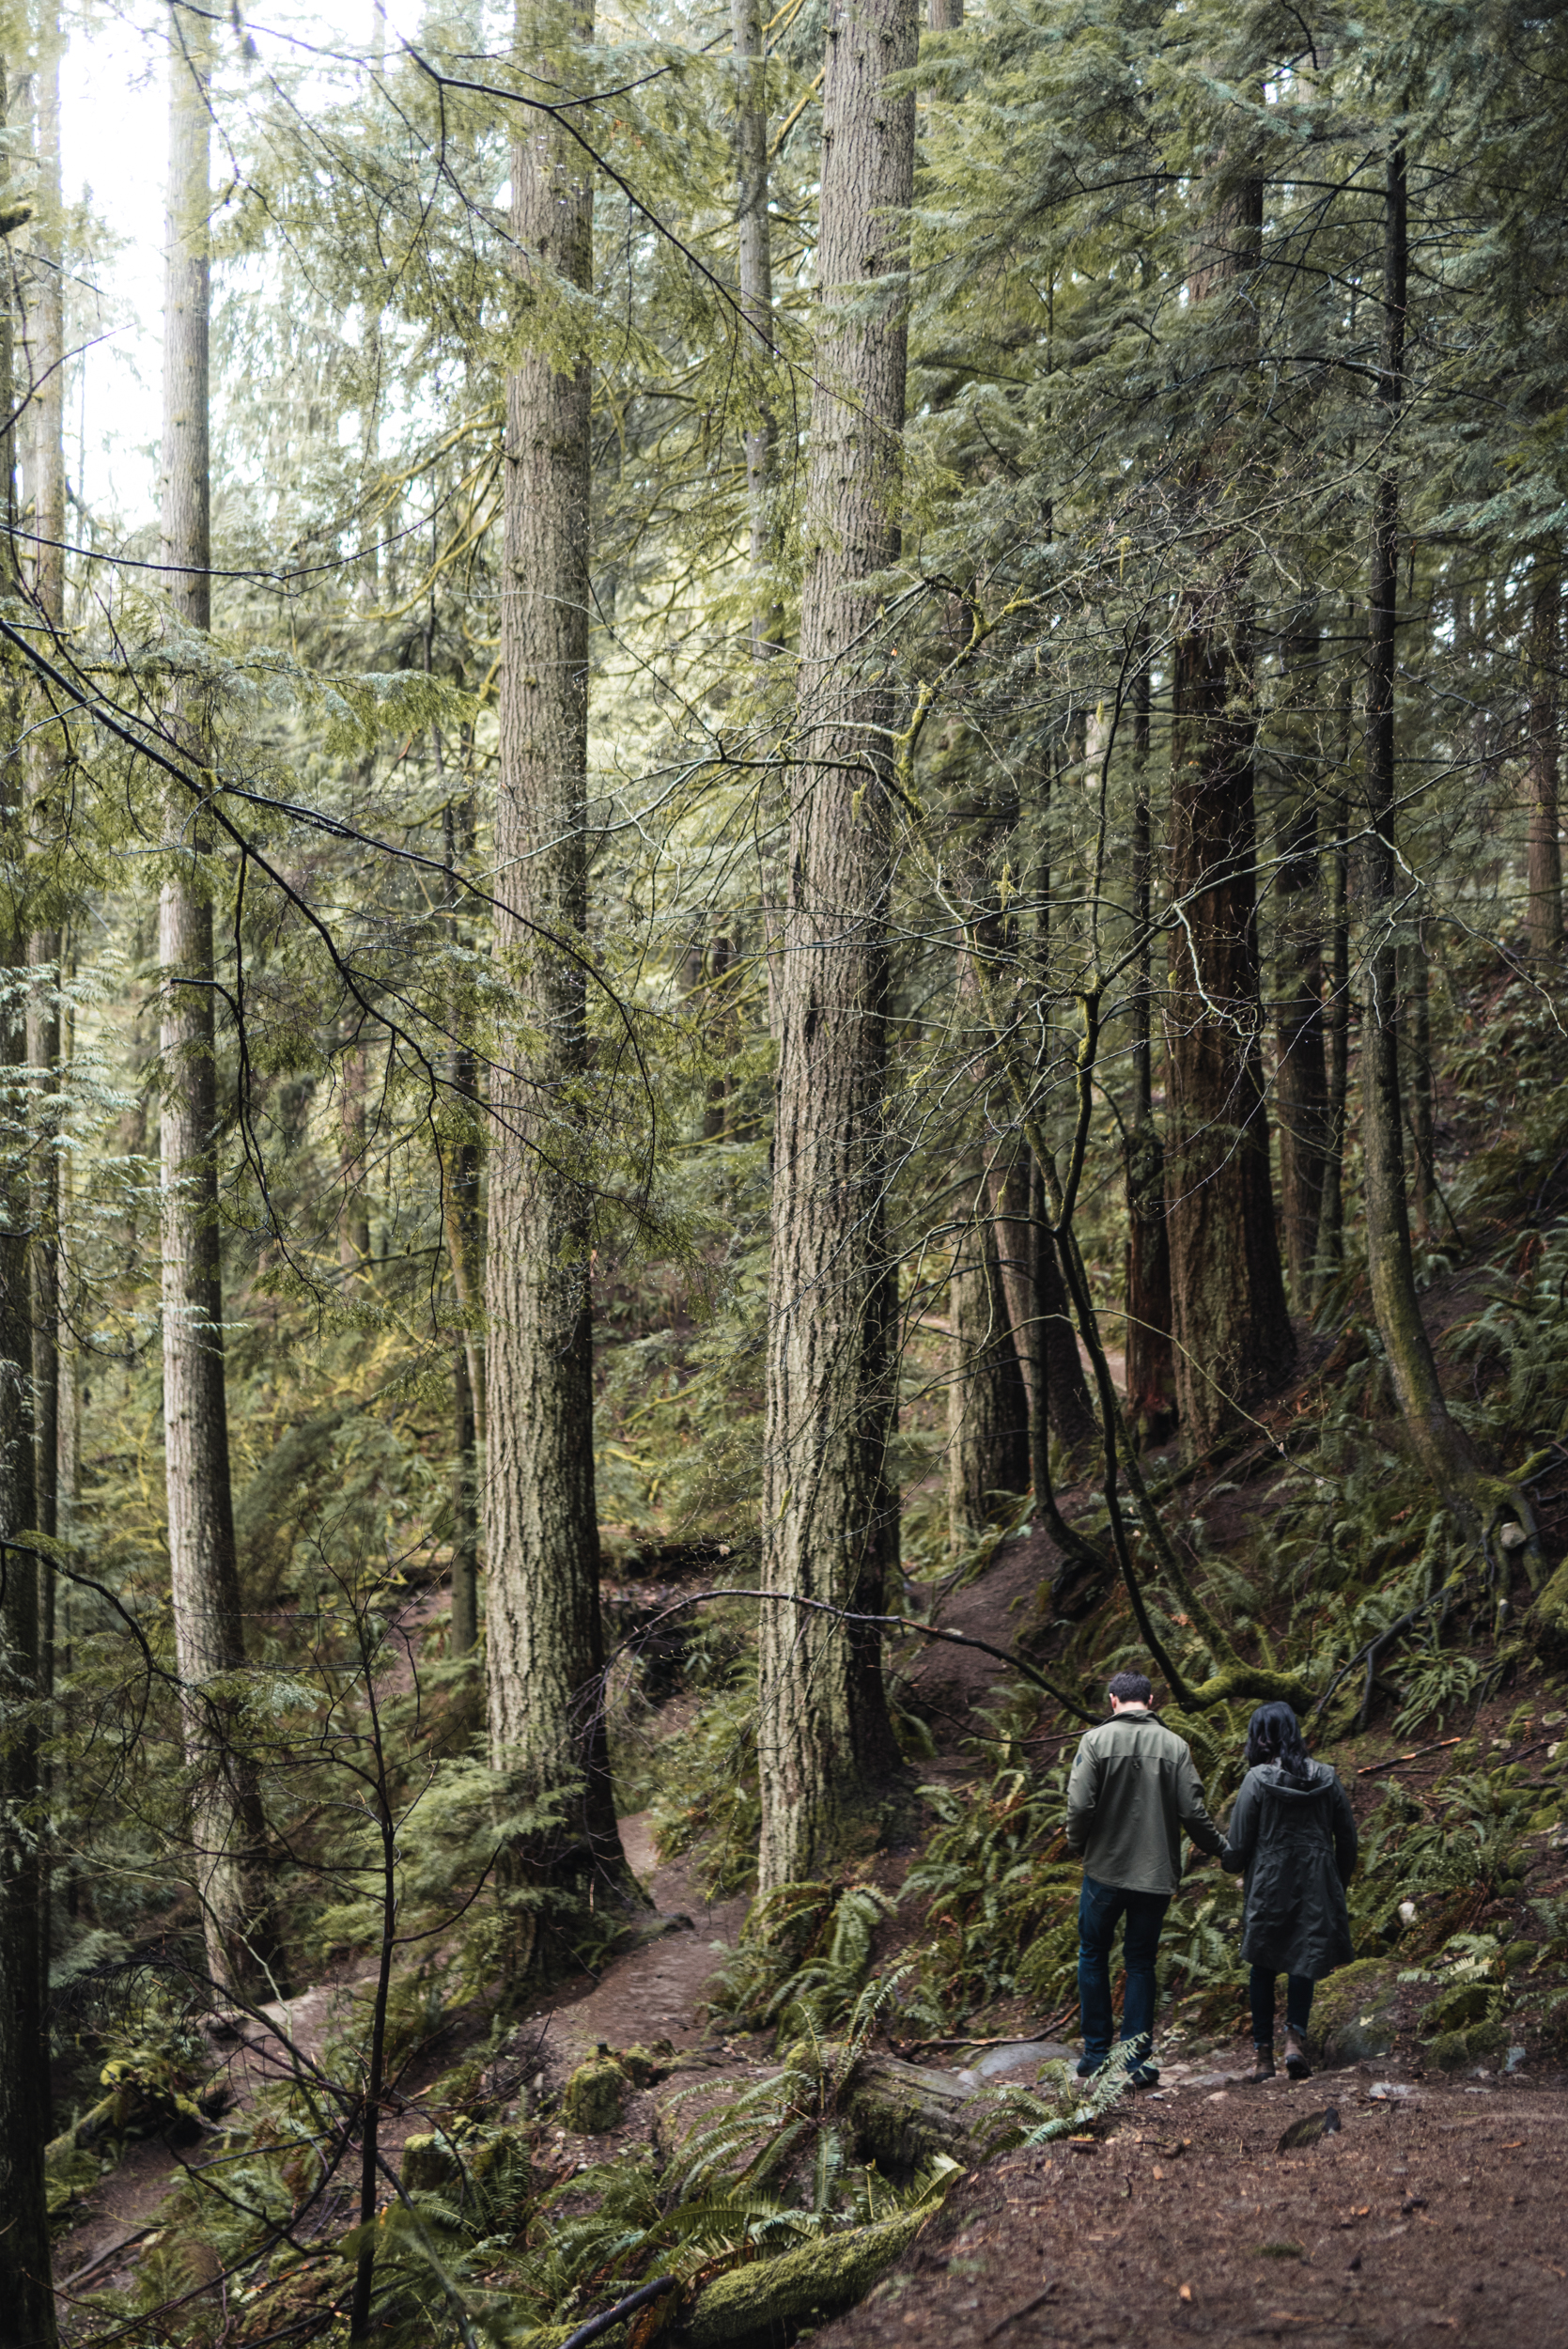 Couple walking through forest trail